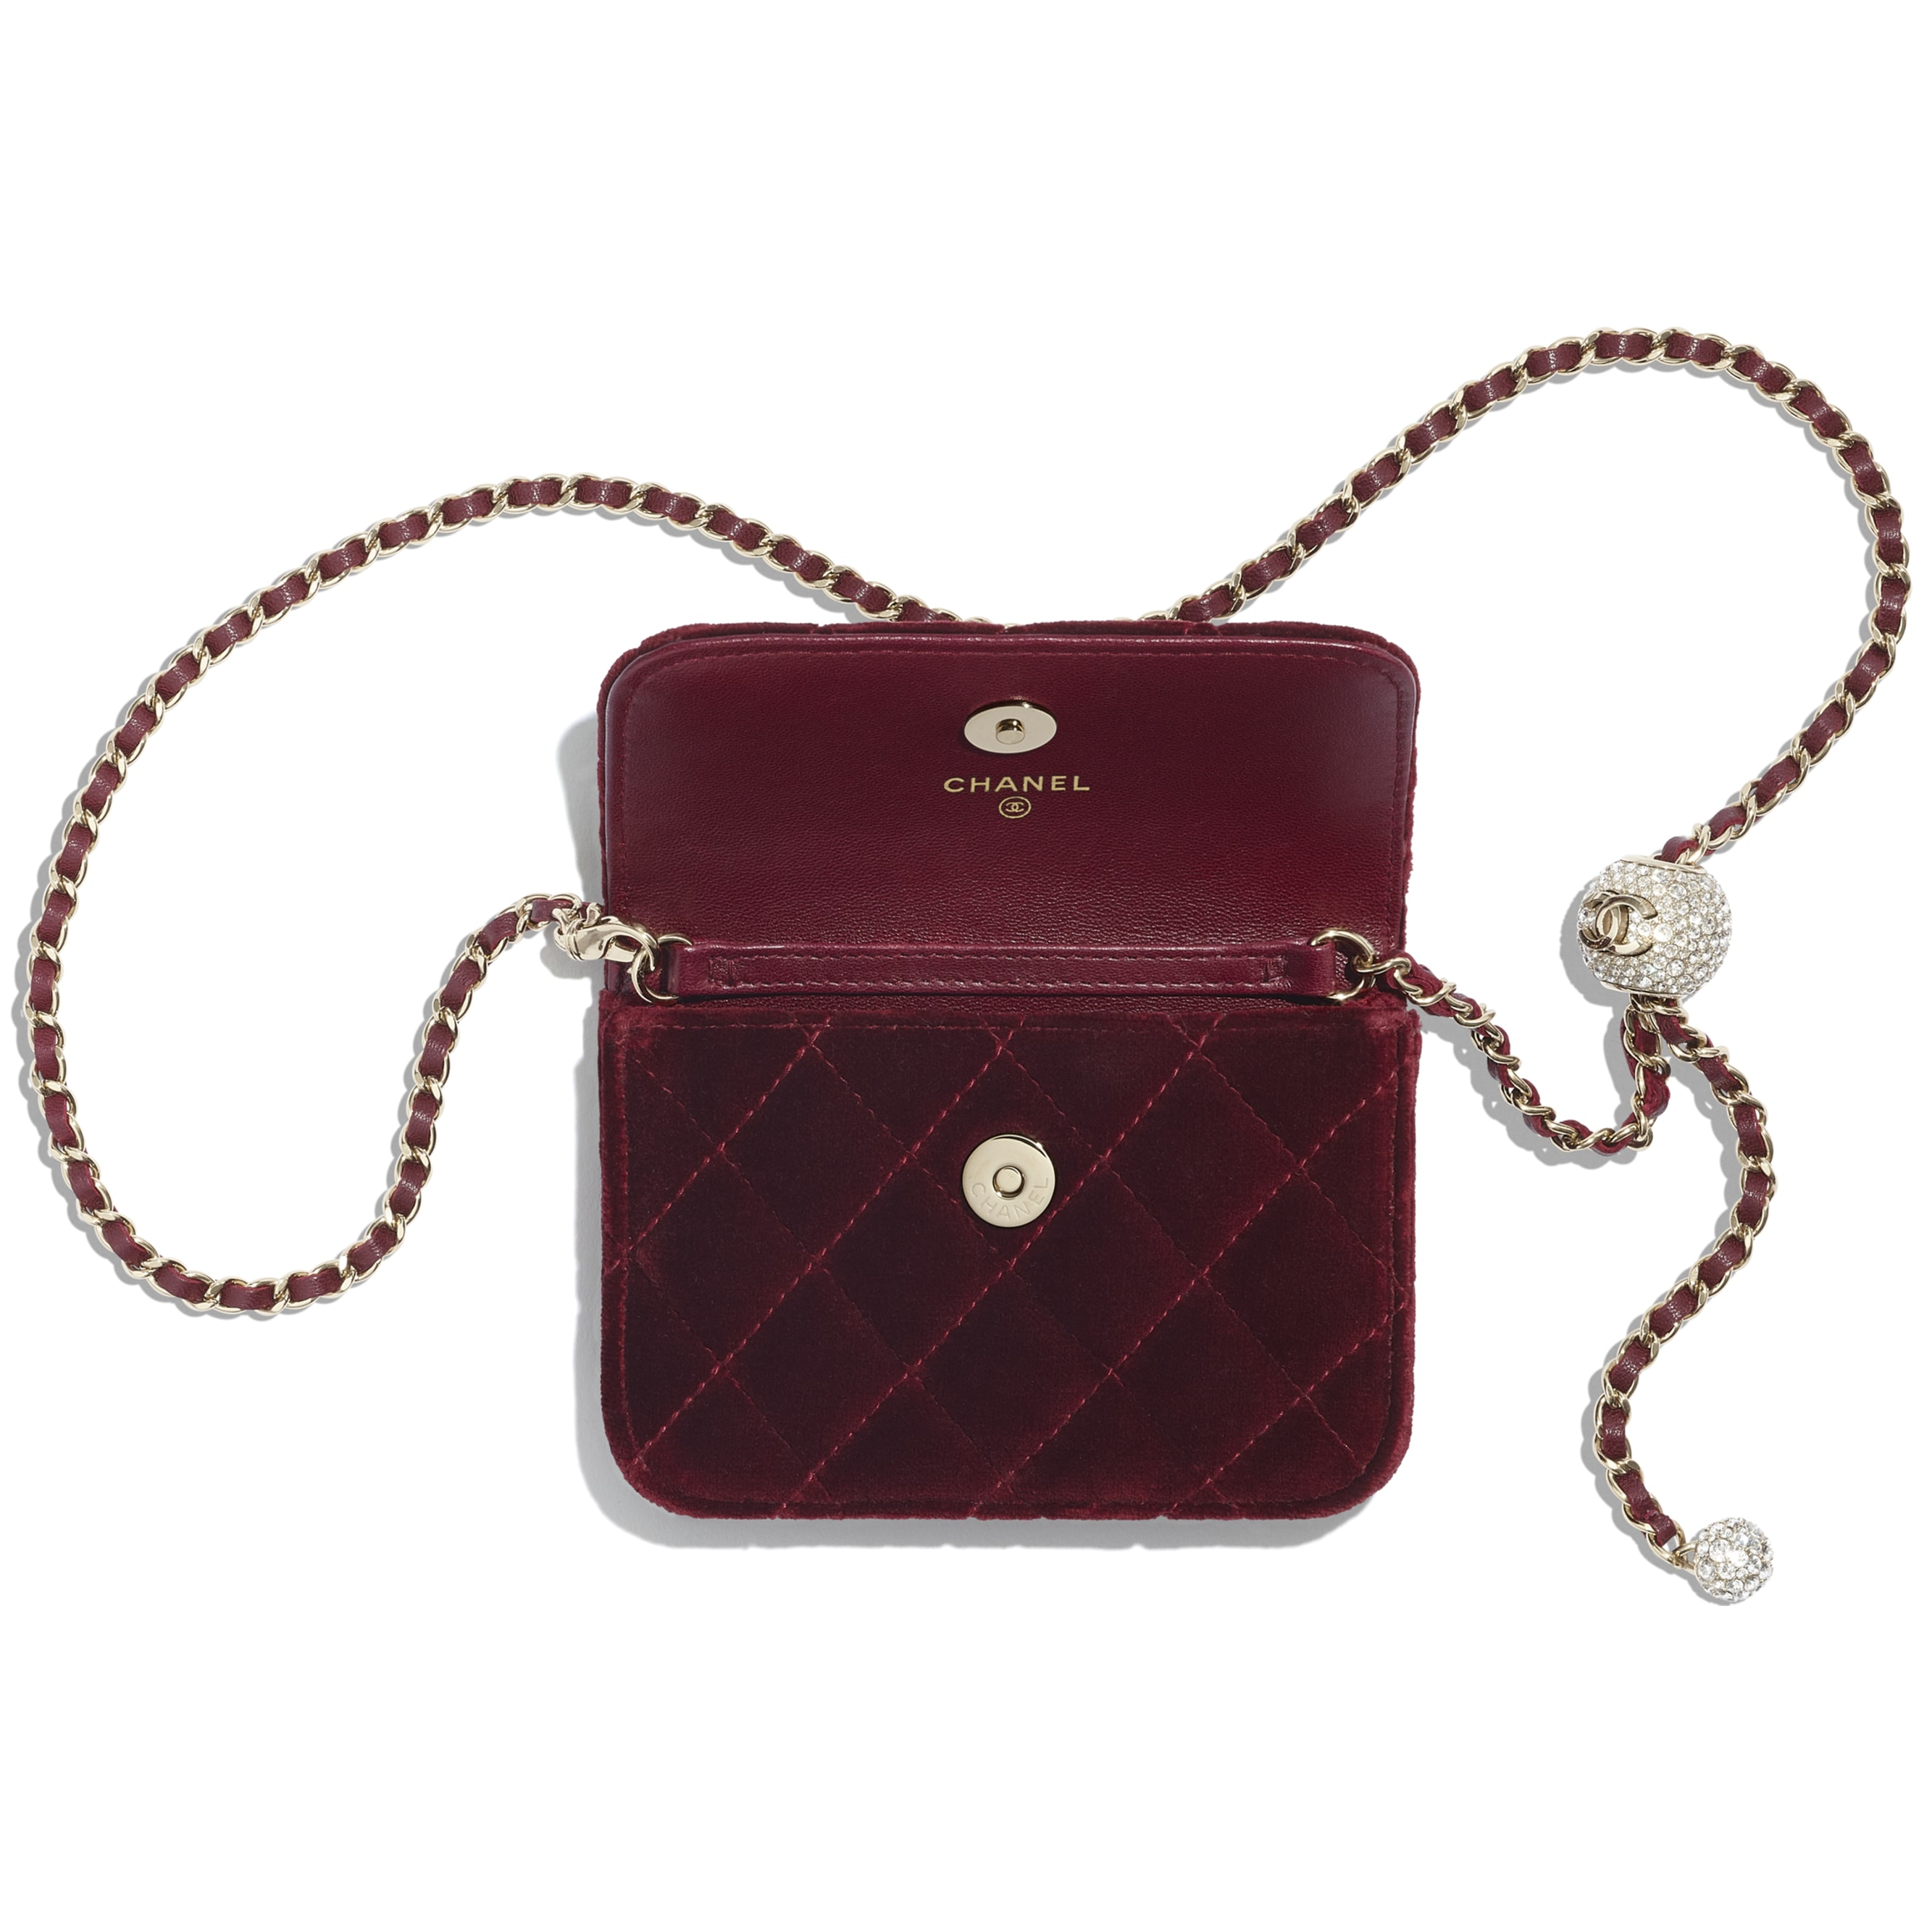 Clutch With Chain - Burgundy - Velvet, Diamanté & Silver-Tone Metal - CHANEL - Alternative view - see standard sized version